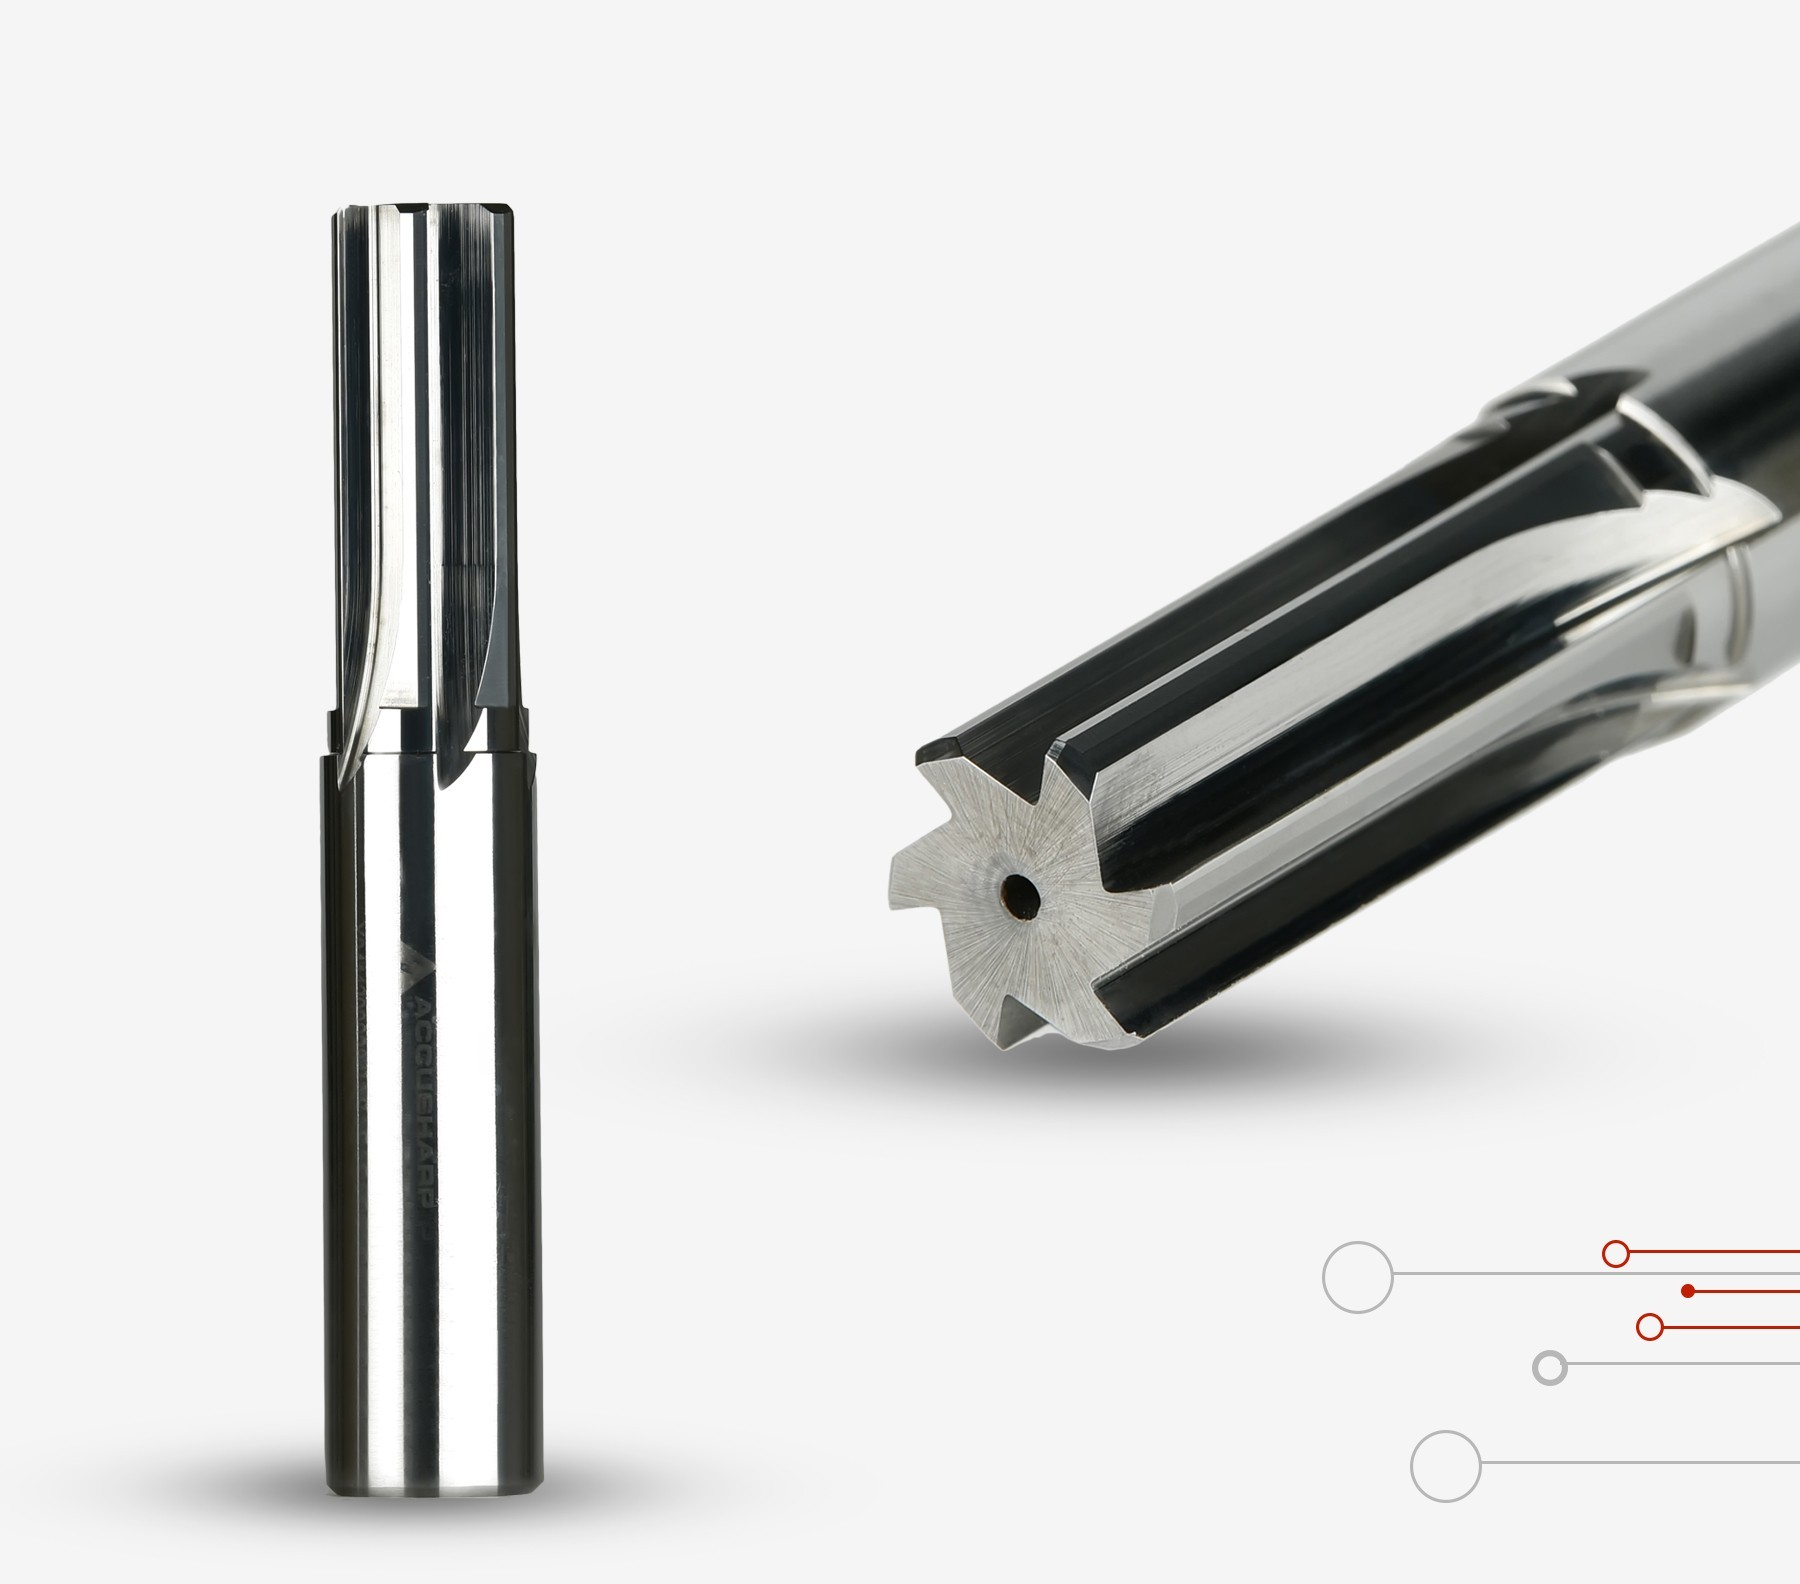 Reamer   Solid Carbide Reamer  Accusharp Reamer tools to fulfil your Industrial needs.